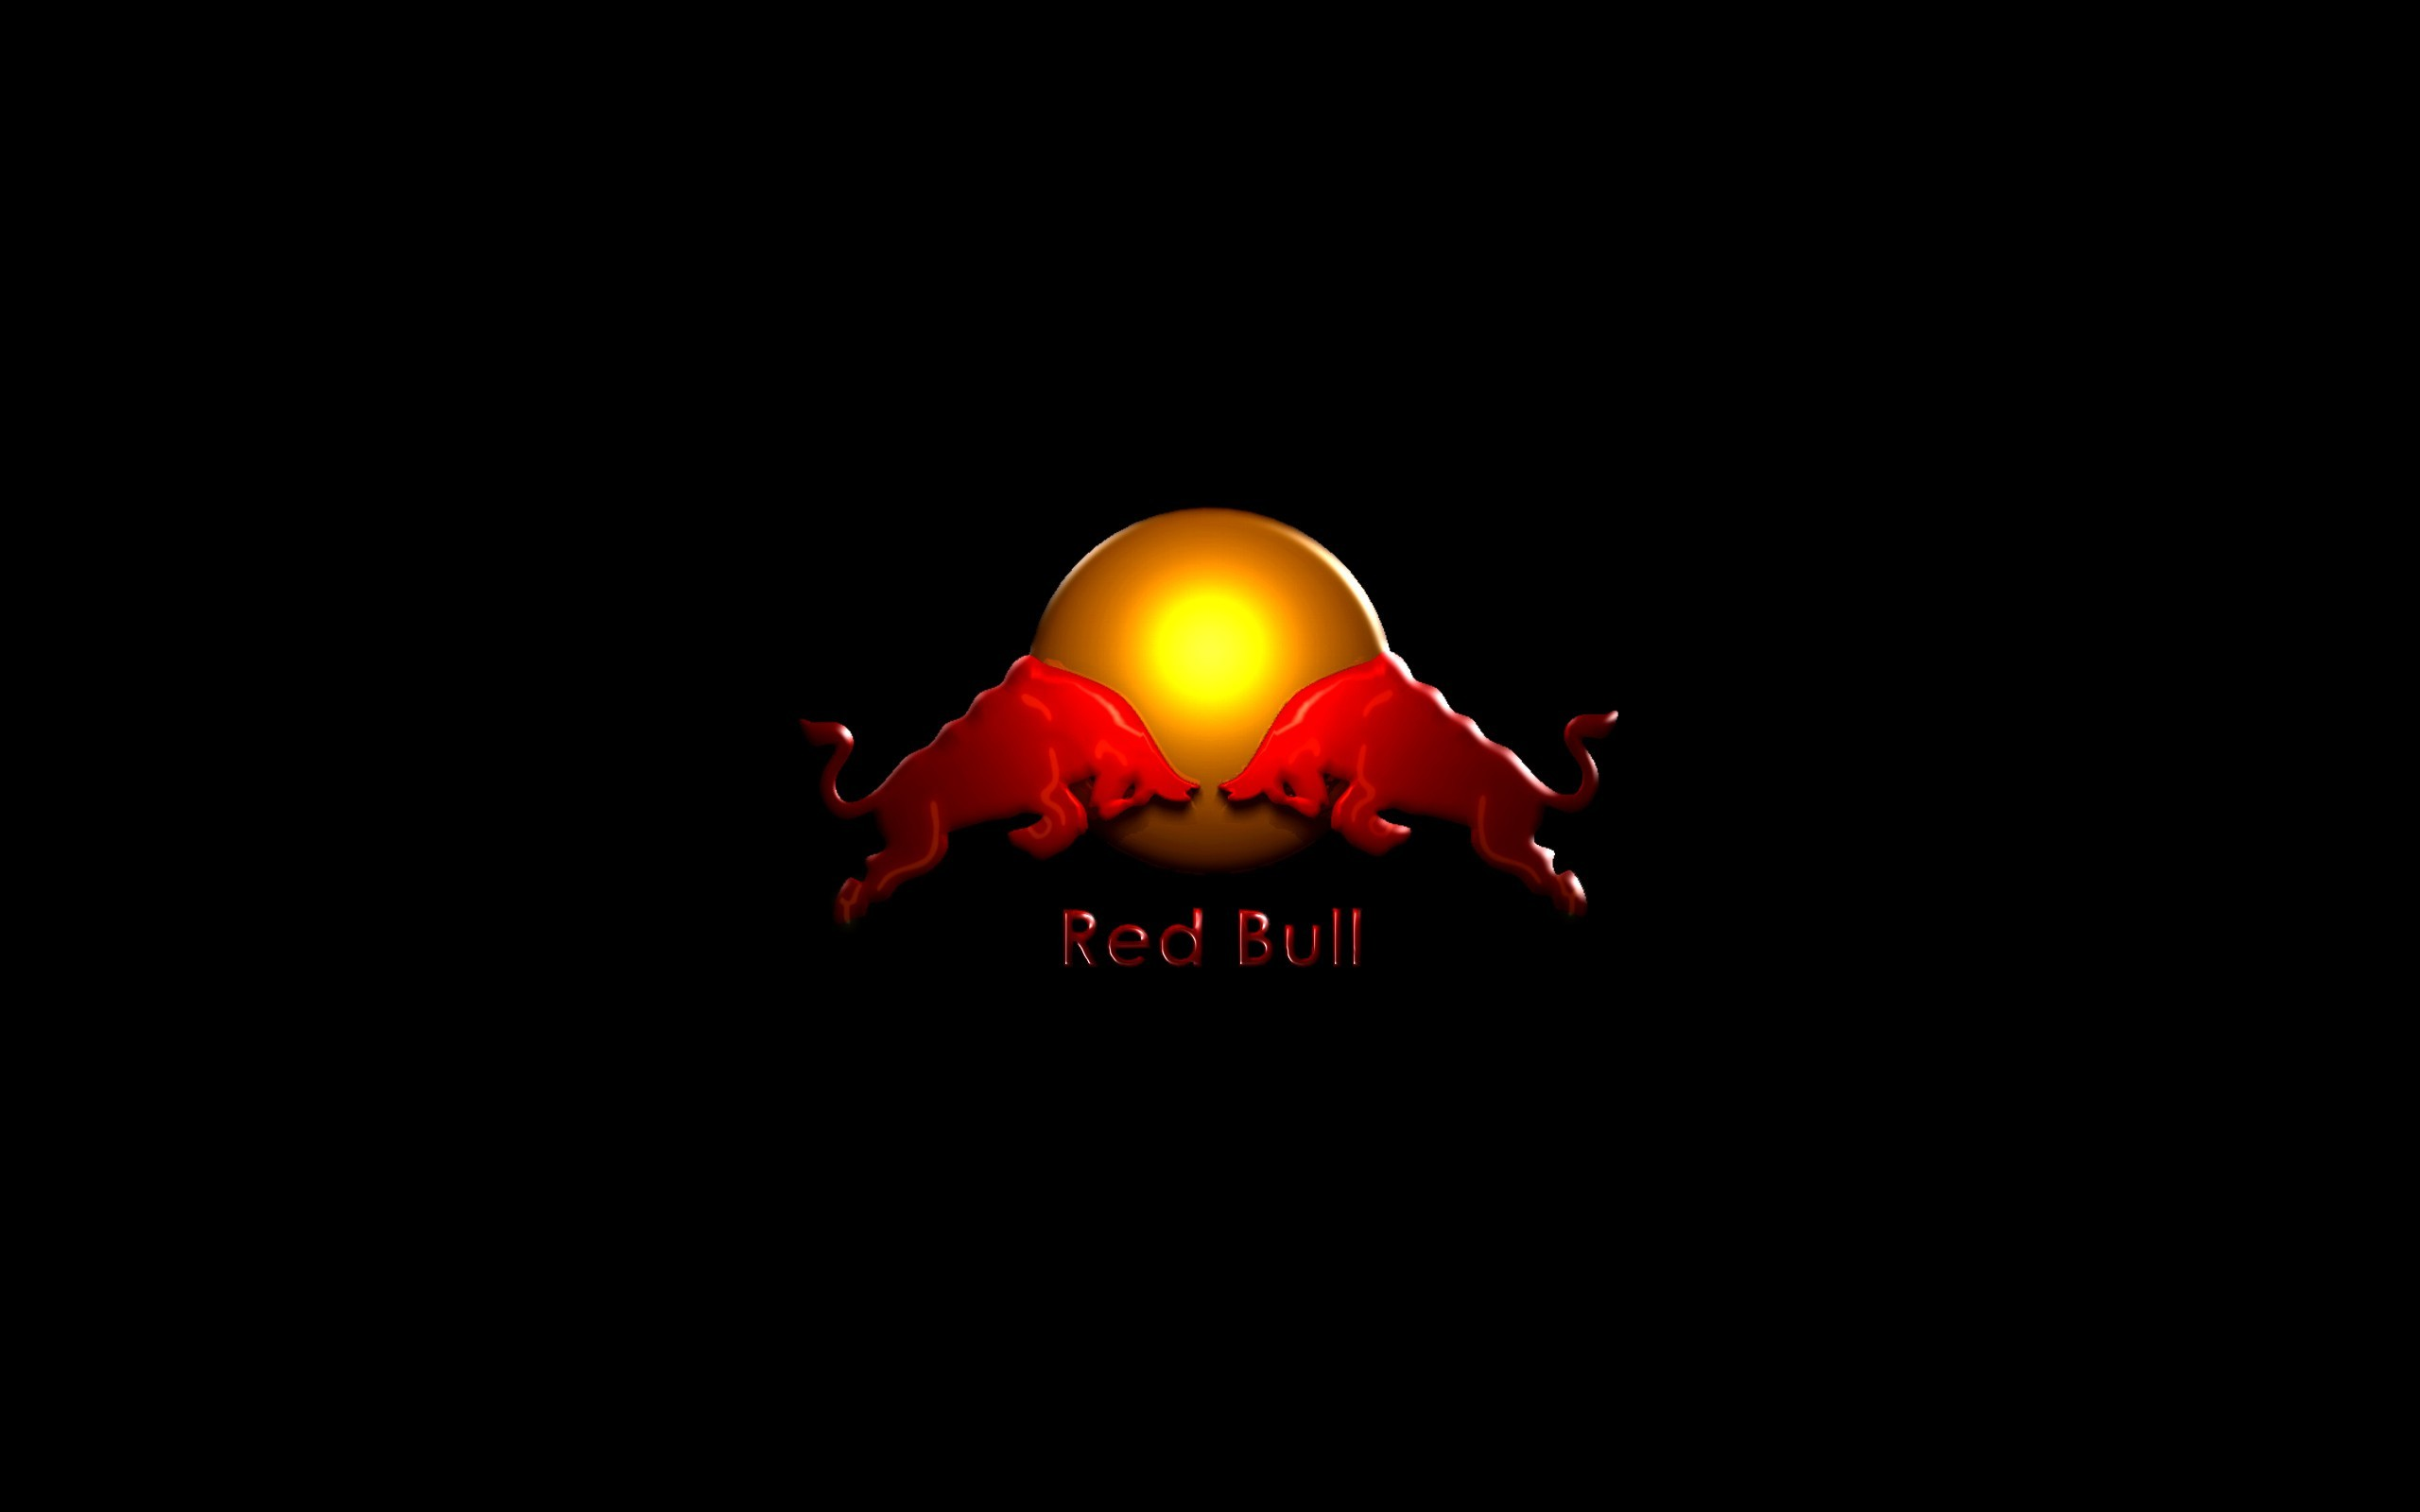 2560x1600 Red Bull Logo Backgrounds HD.